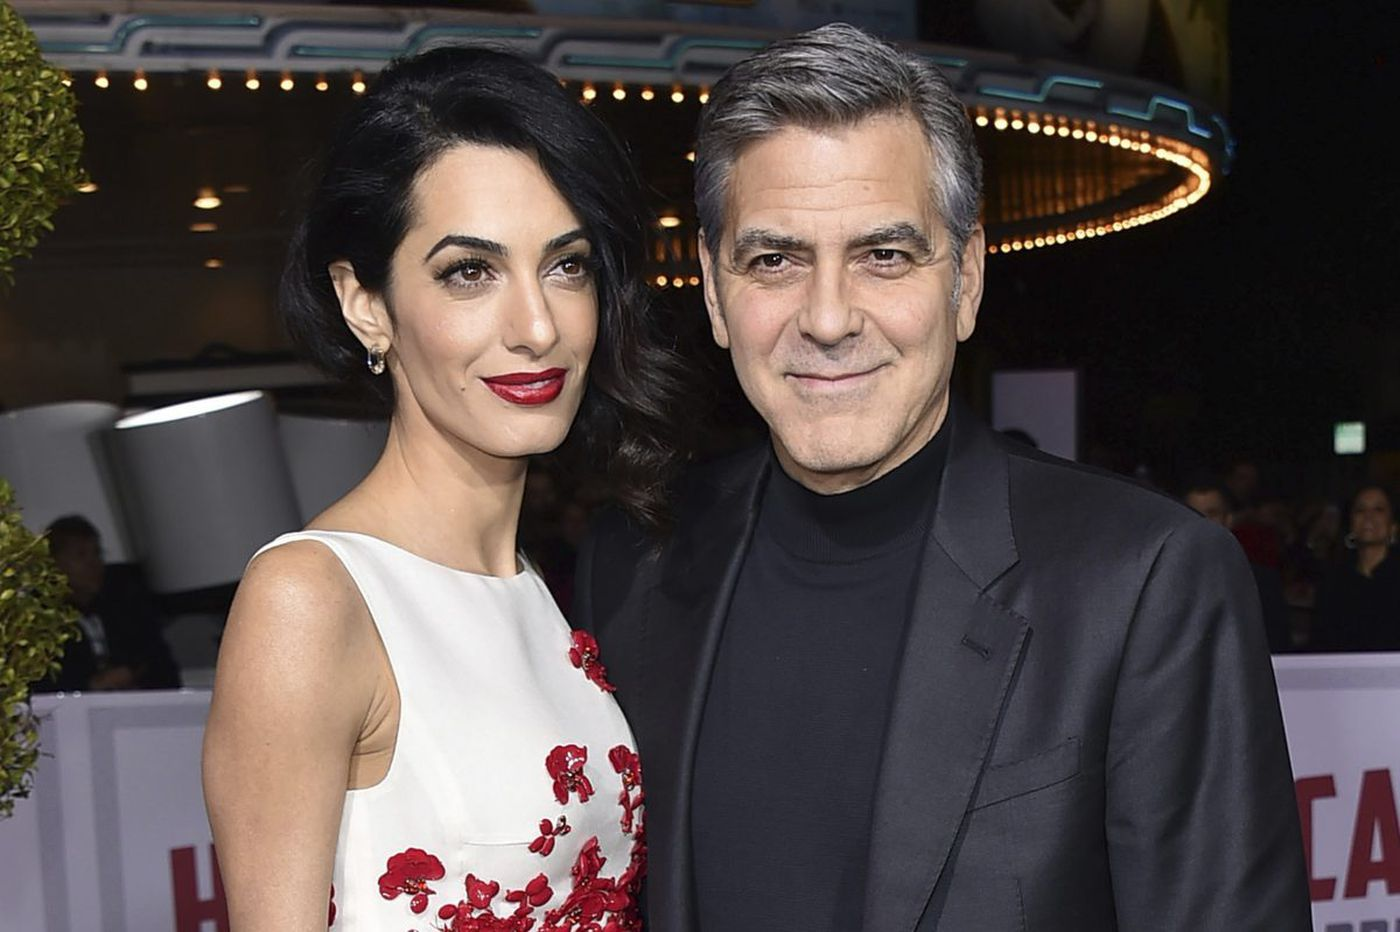 George and Amal Clooney announce birth of twins